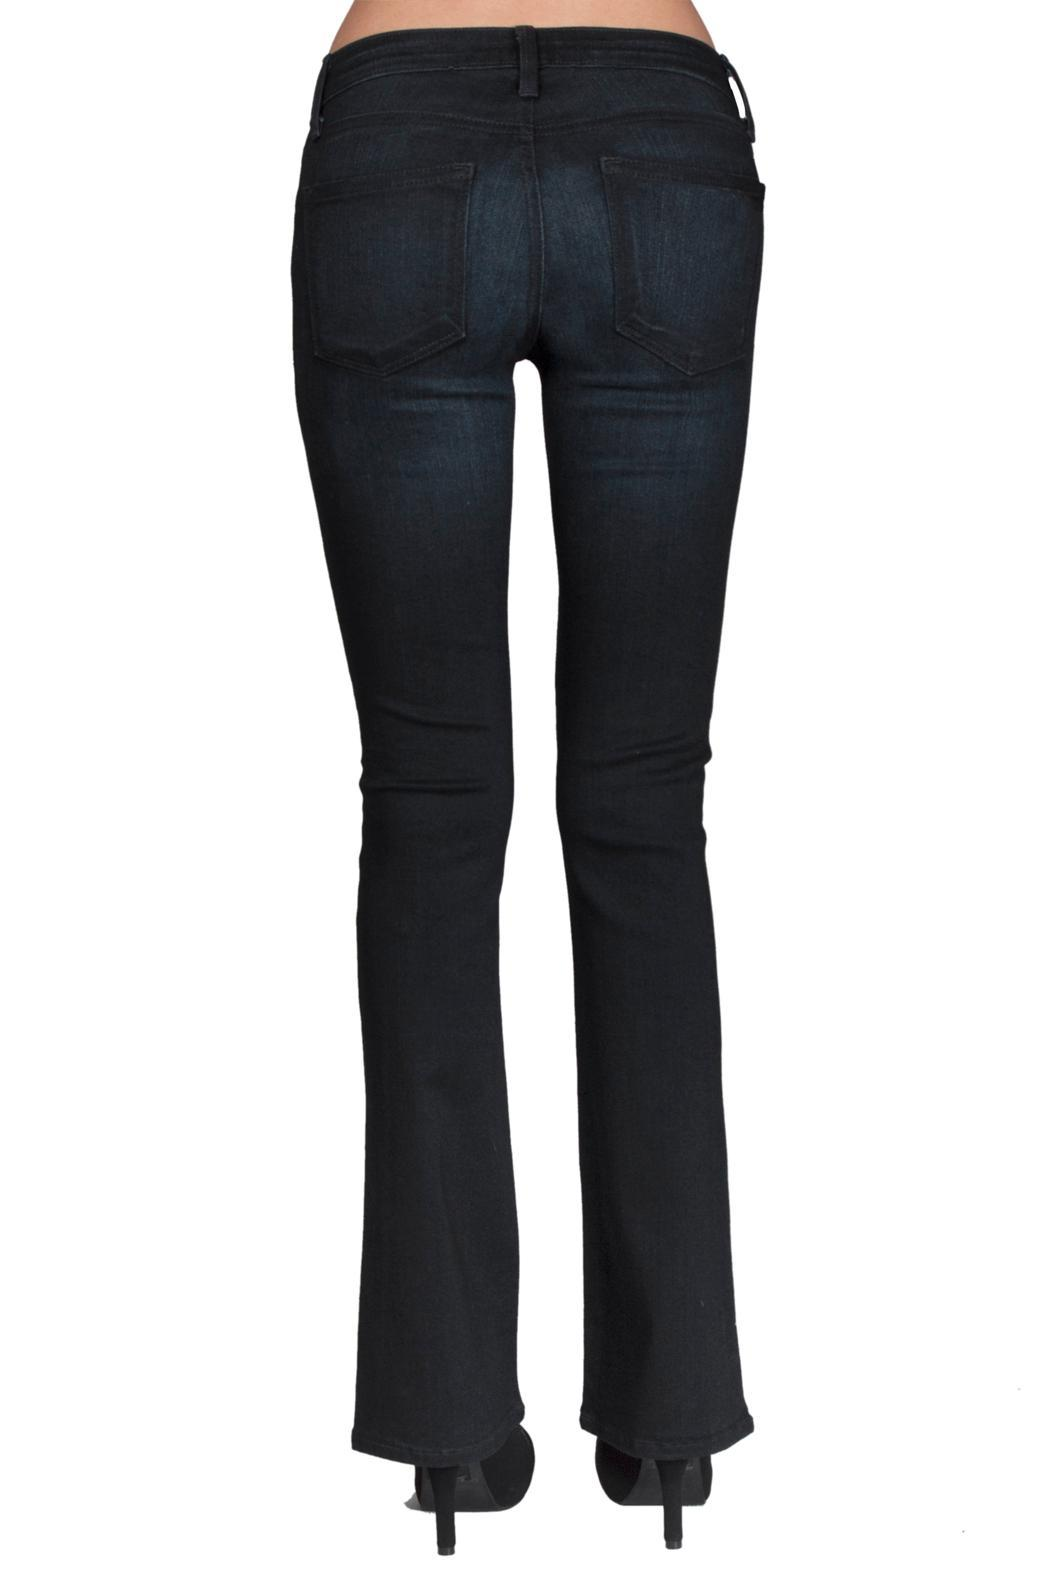 just black Skinny Bootcut Jean - Side Cropped Image